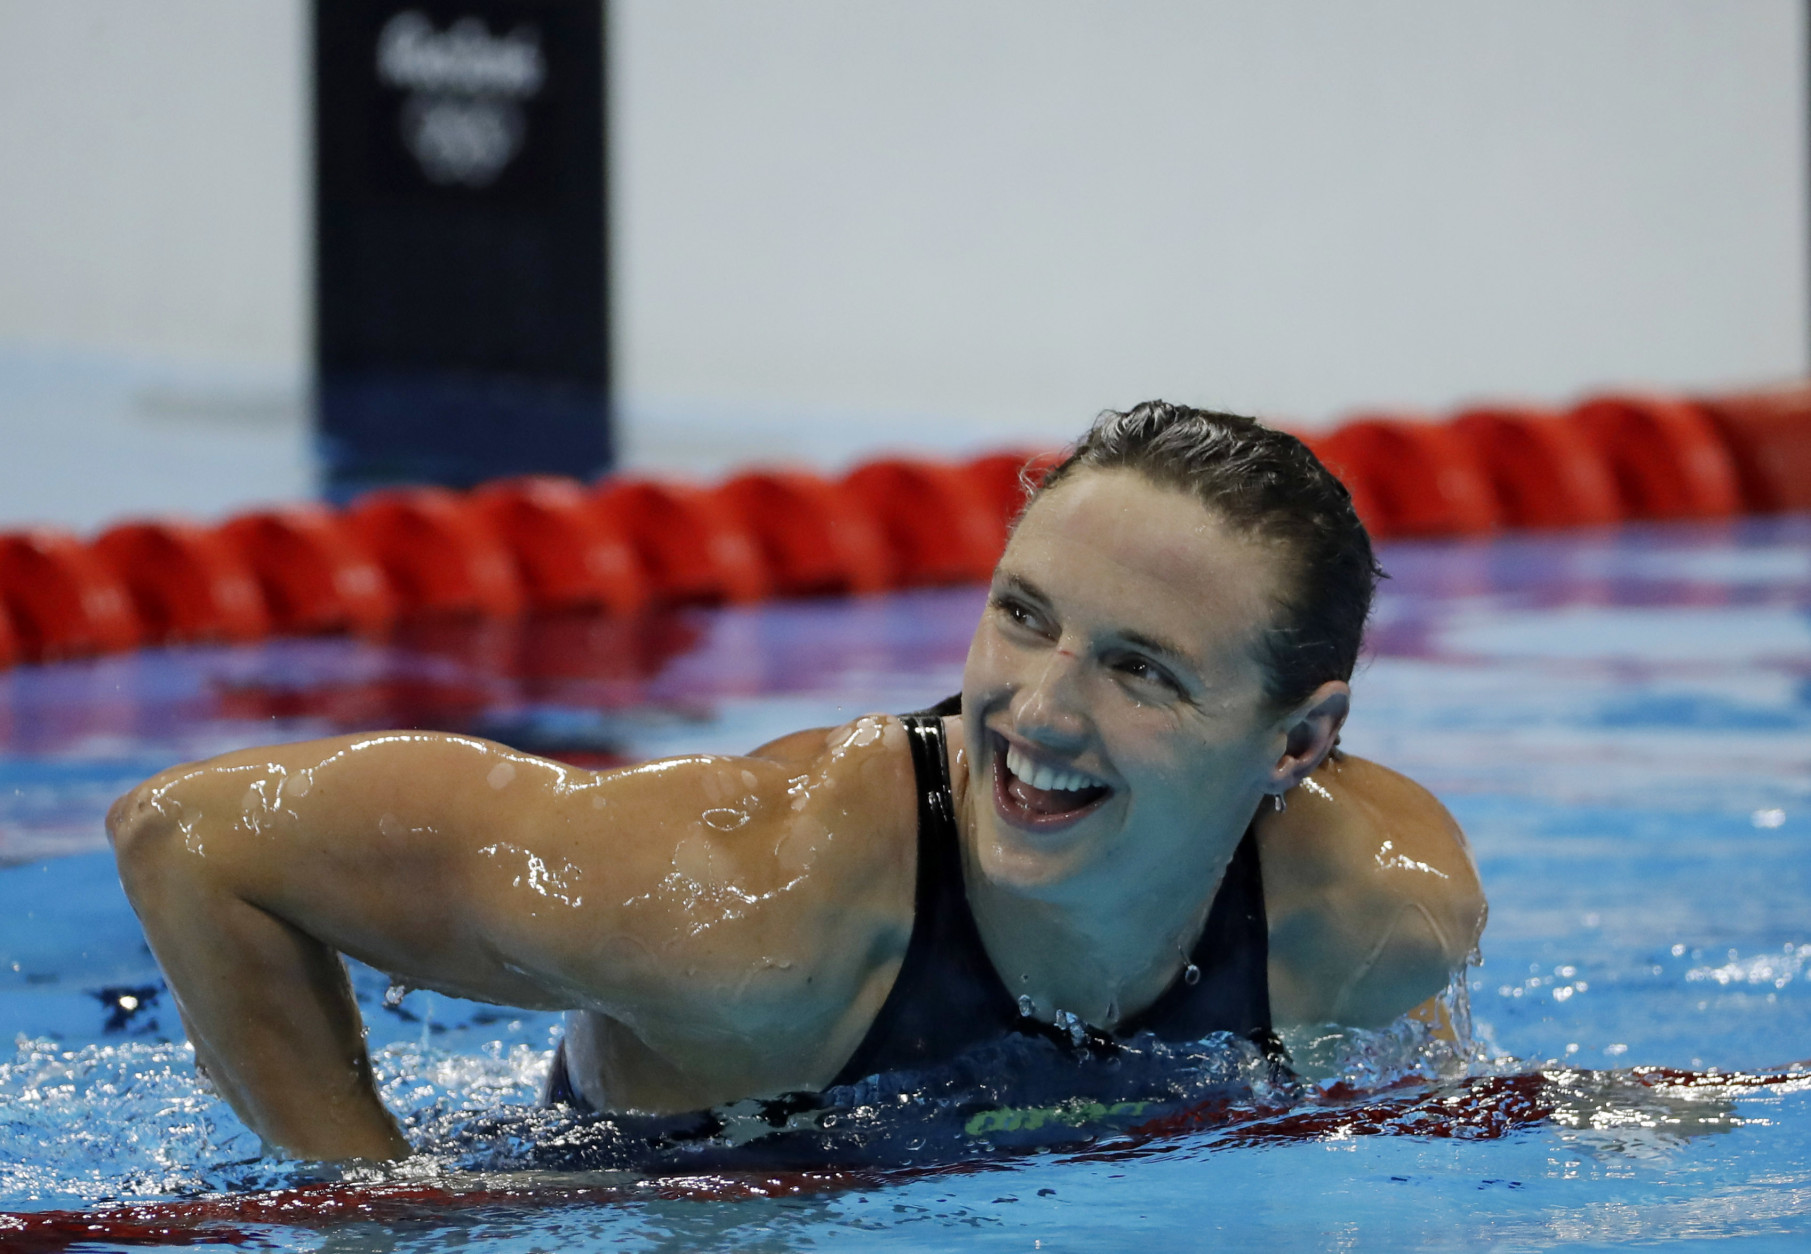 Hungary's Katinka Hosszu smiles after breaking the world record and winning the gold medal in the women's 400-meter individual medley during the swimming competitions at the 2016 Summer Olympics, Saturday, Aug. 6, 2016, in Rio de Janeiro, Brazil. (AP Photo/Matt Slocum)